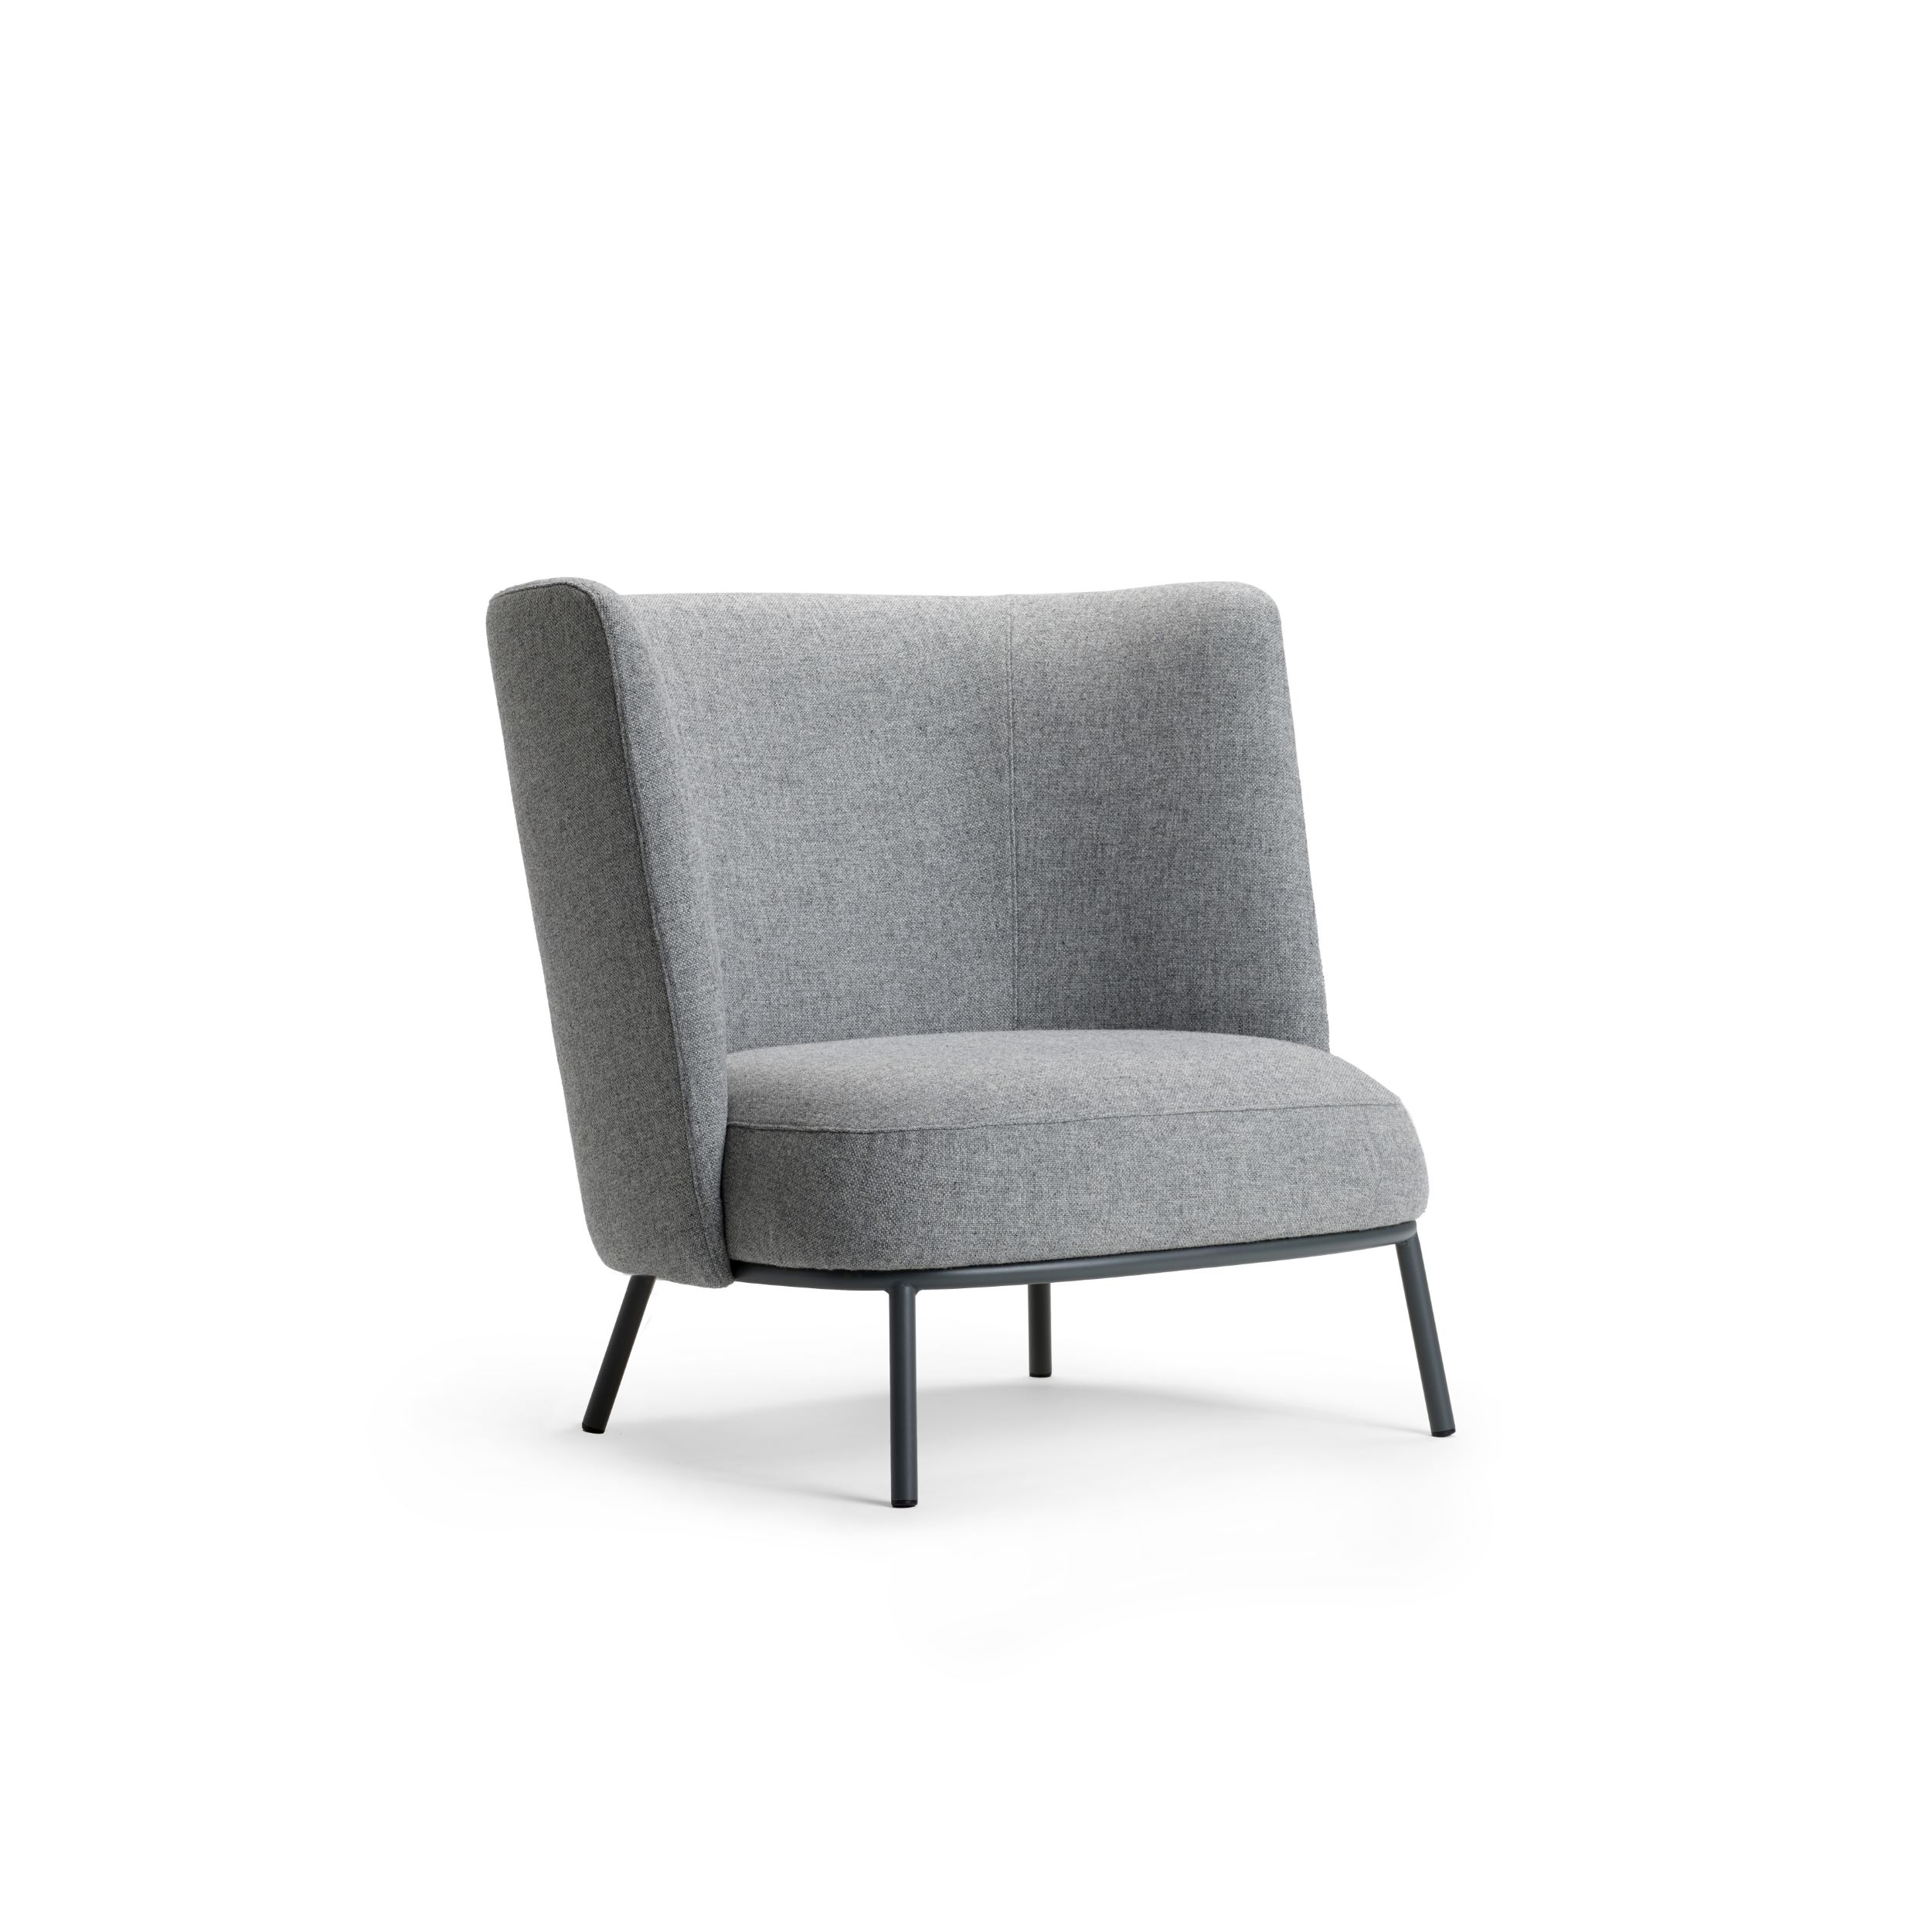 Shift High, Easy chair | Offecct